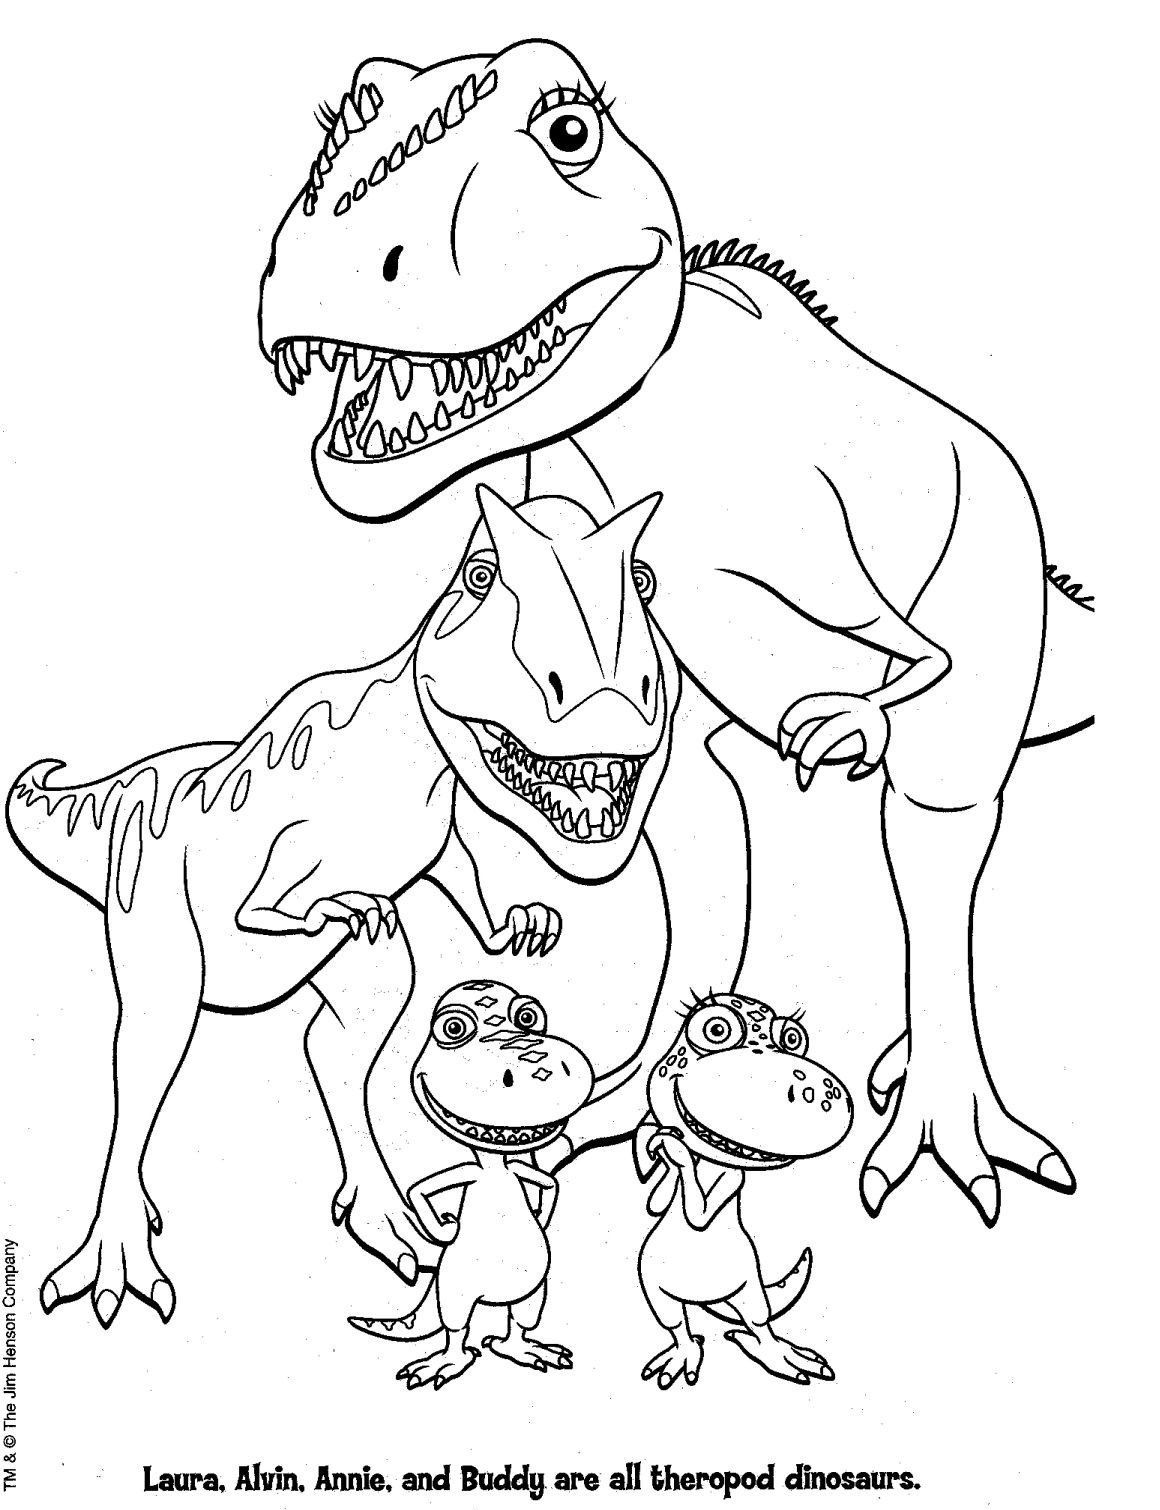 dinosaurs coloring page baby dinosaur coloring pages to download and print for free dinosaurs page coloring